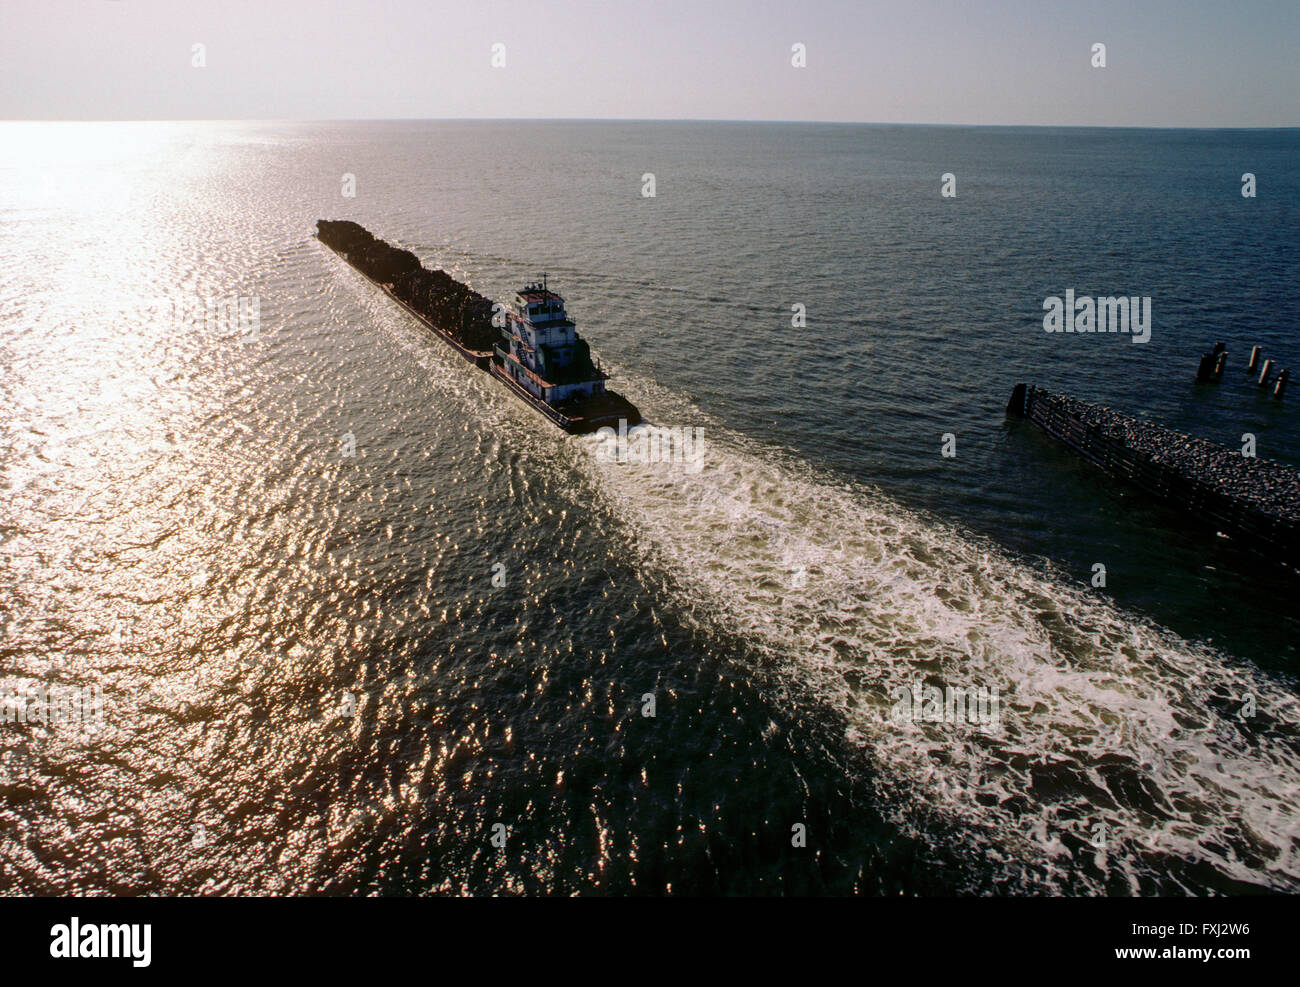 Tug boat pushing barges loaded with logs; Houston Ship Channel; Texas; USA - Stock Image